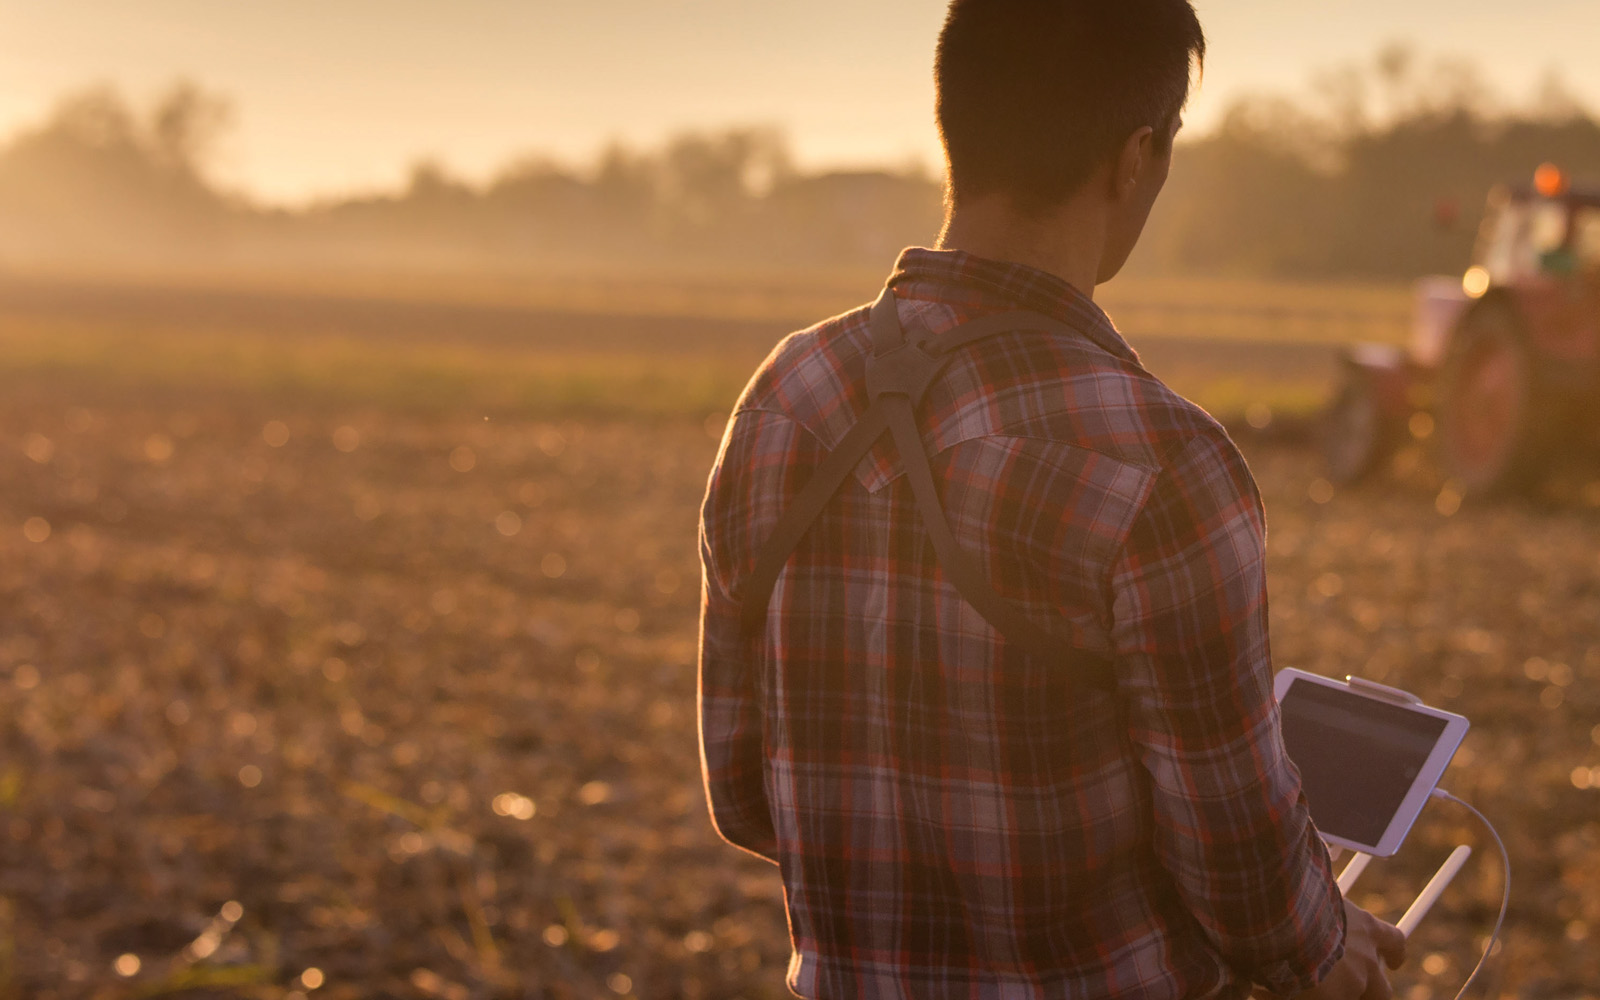 A person standing in a field